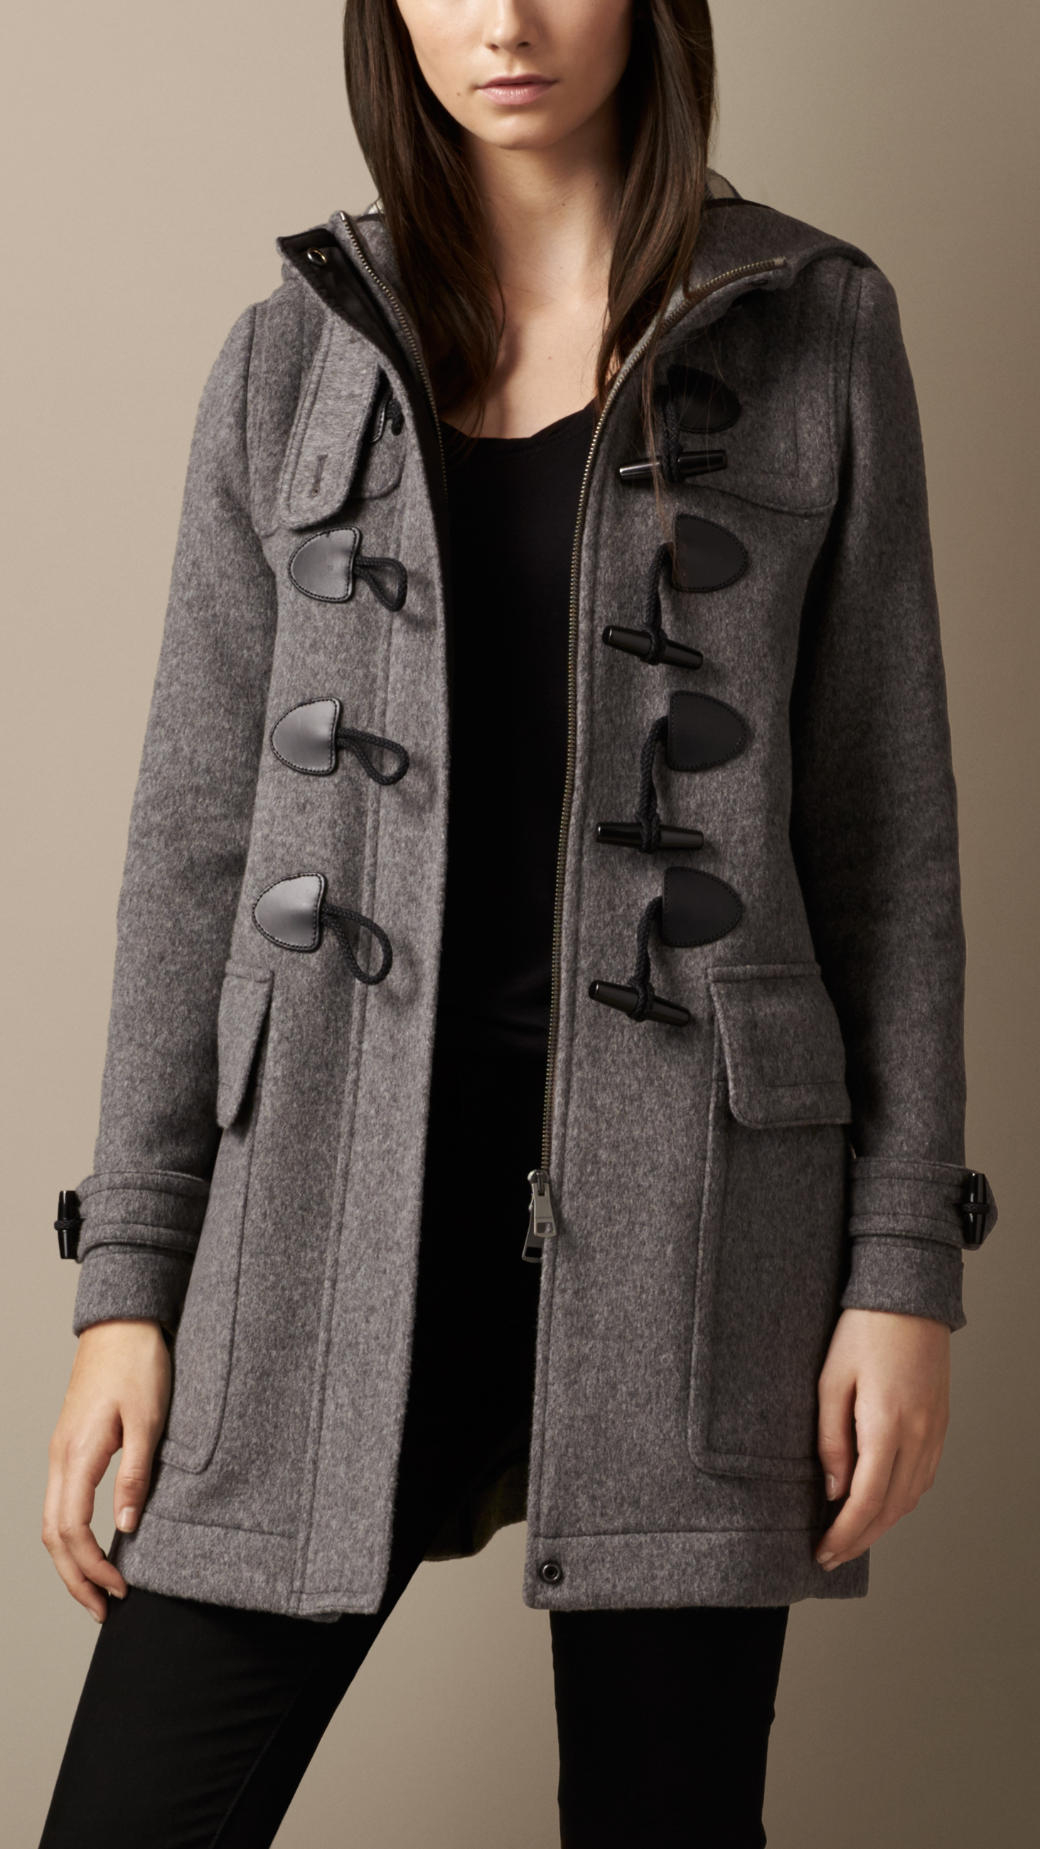 Burberry Straight Fit Duffle Coat in Gray | Lyst